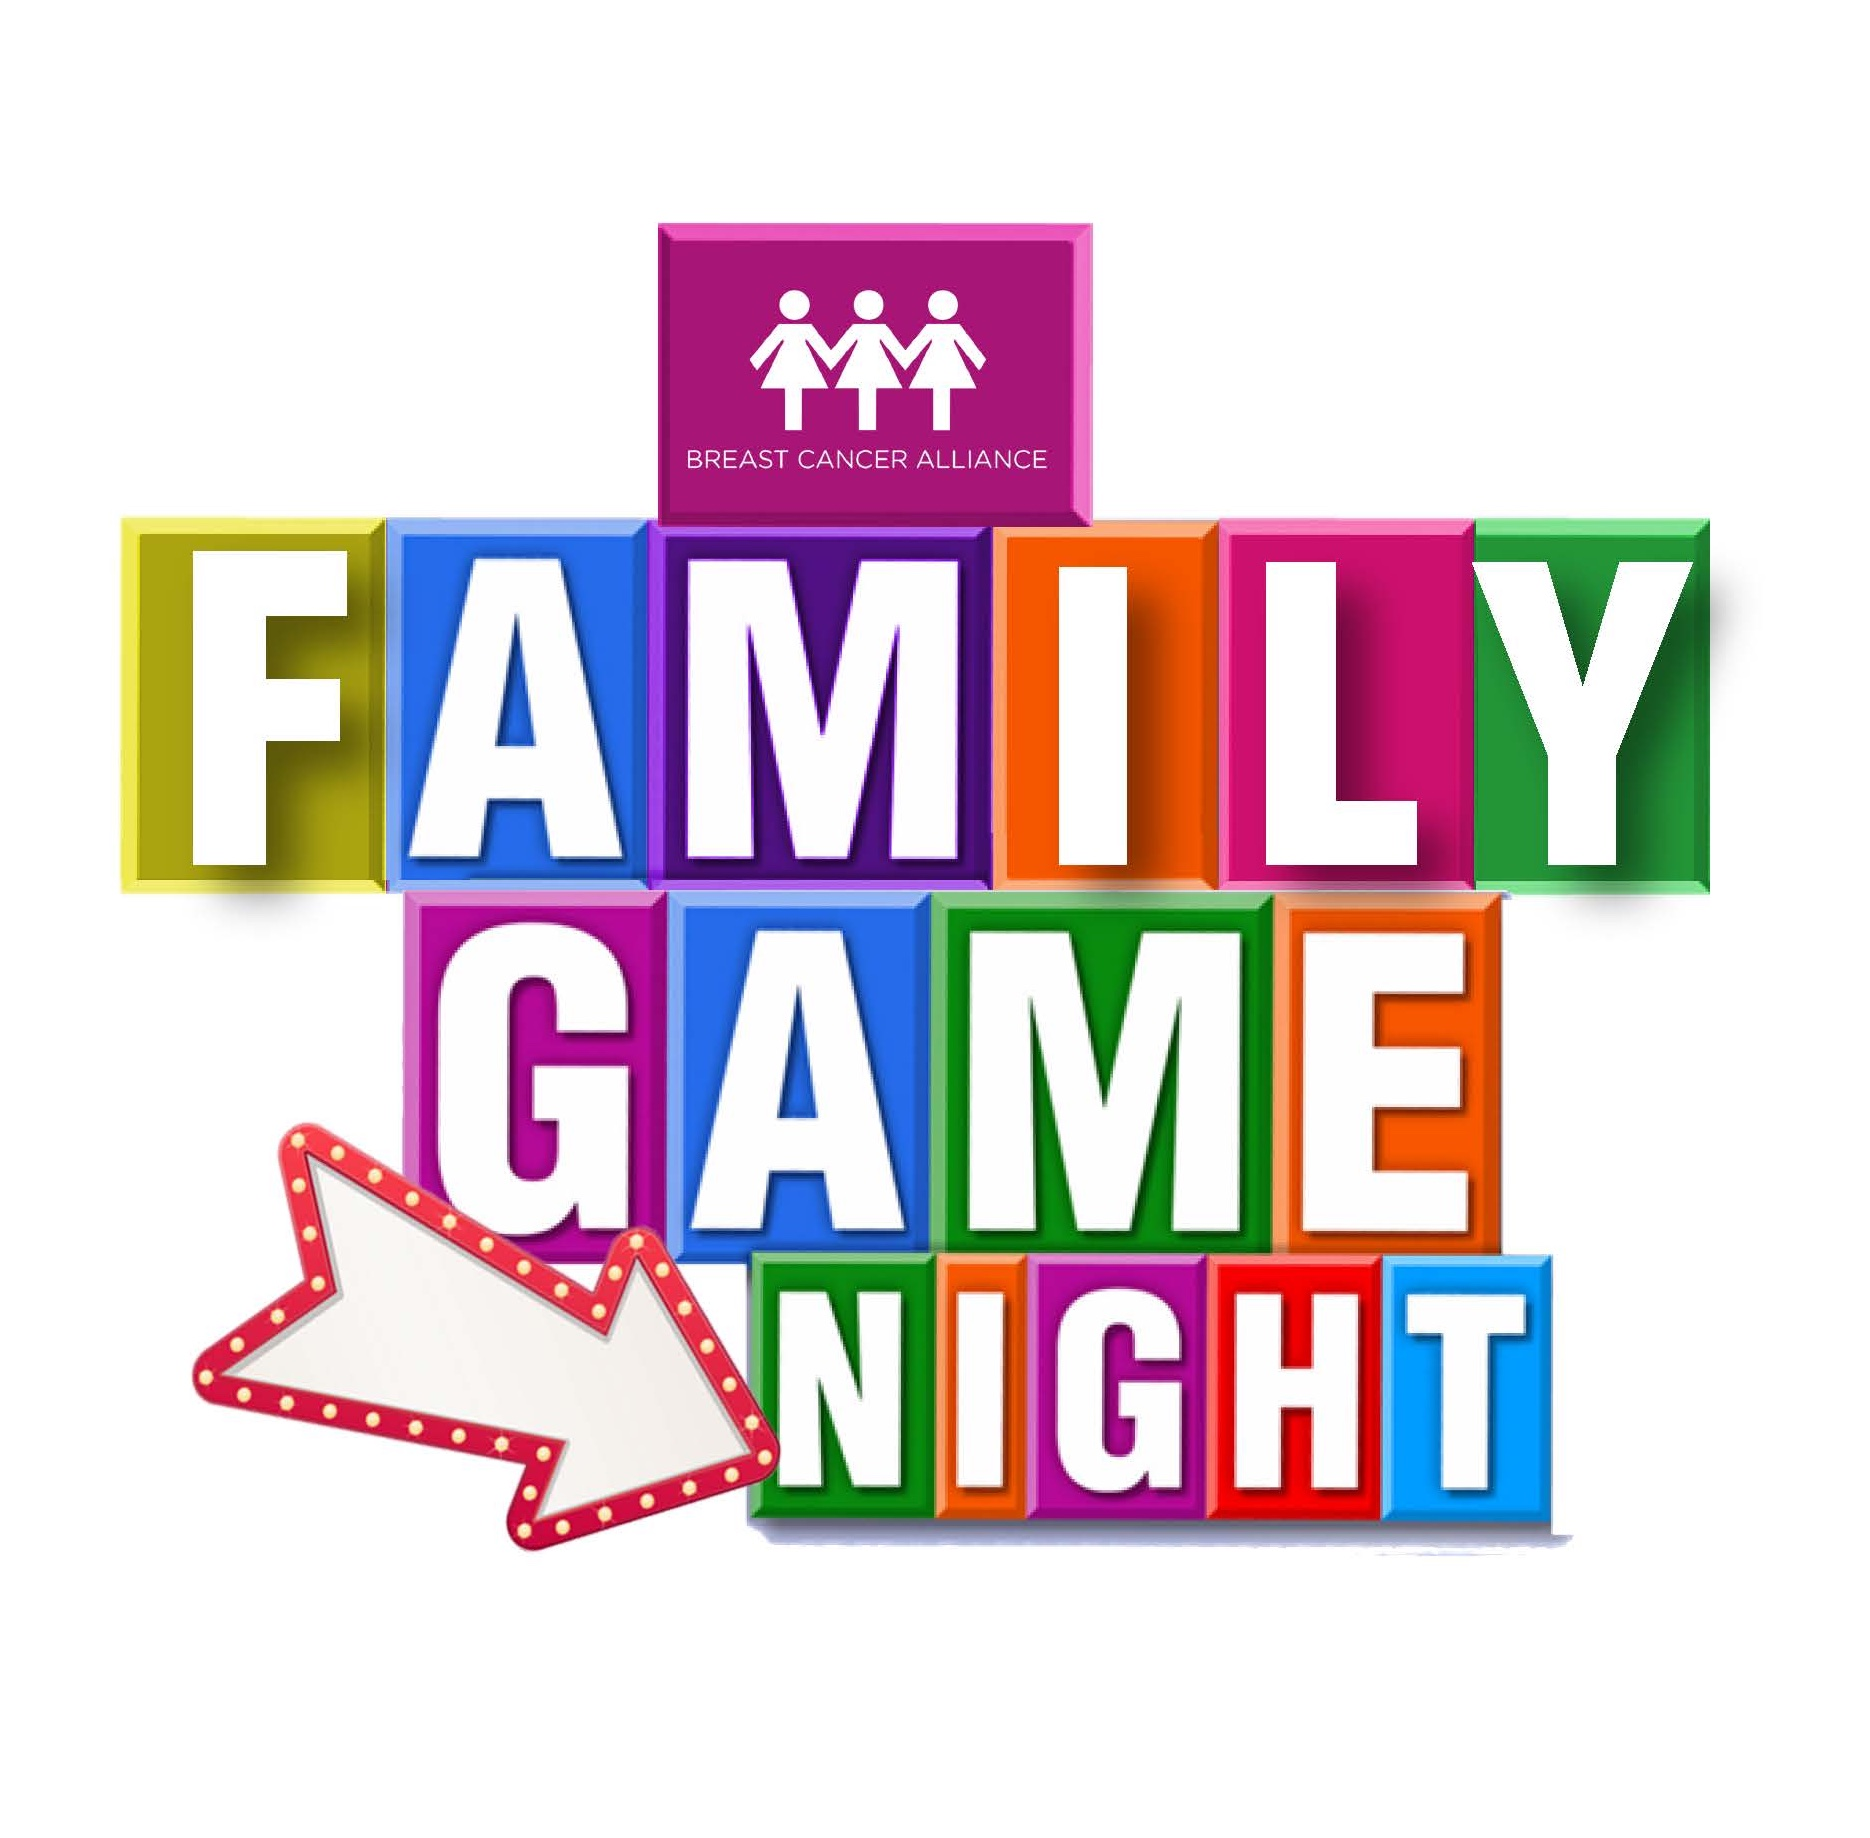 Breast Cancer Alliance Family Game Night